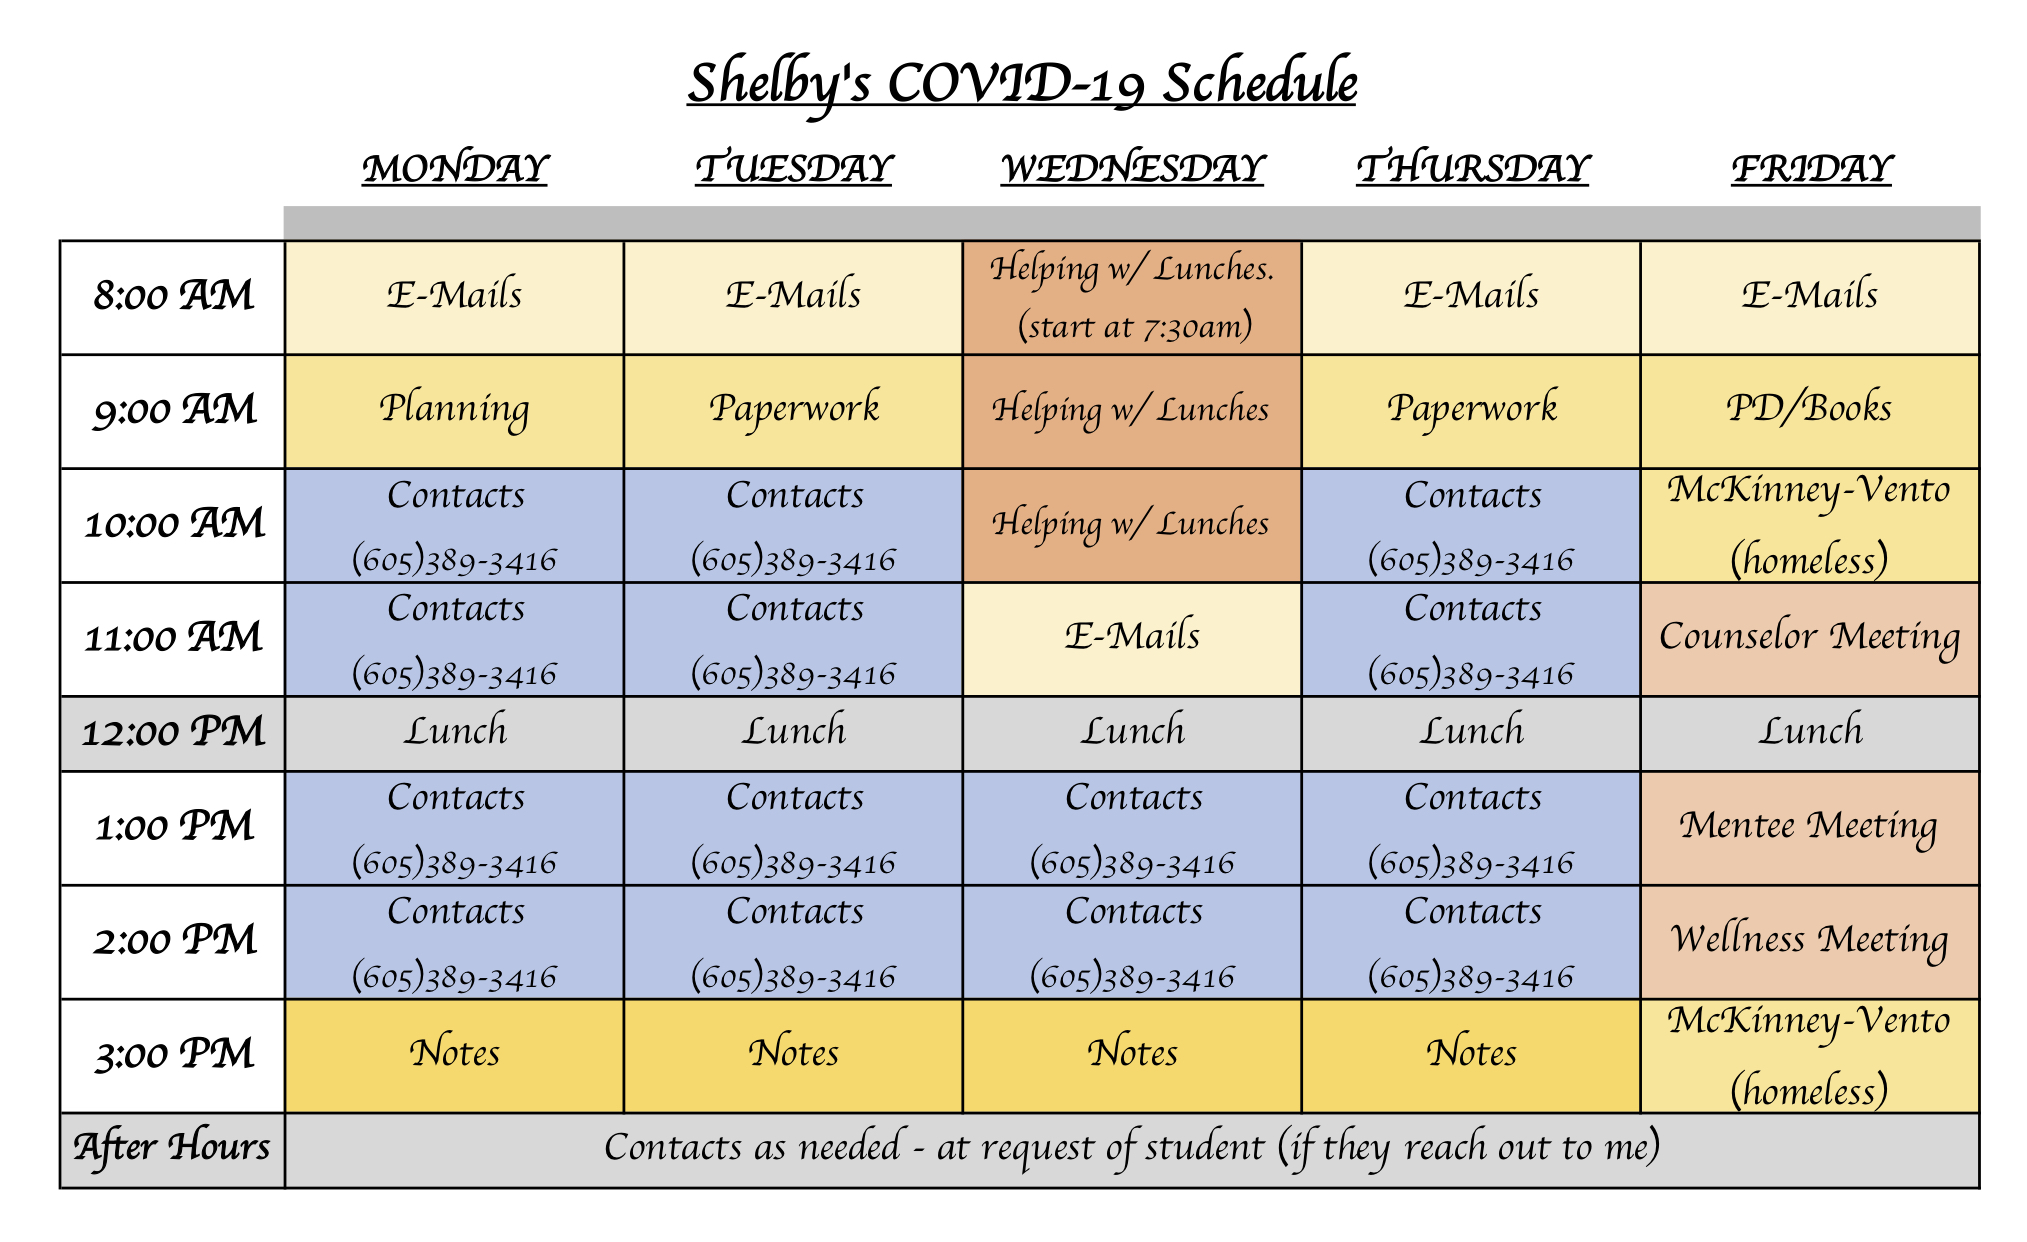 SHELBY'S COVID-19 SCHEDULE